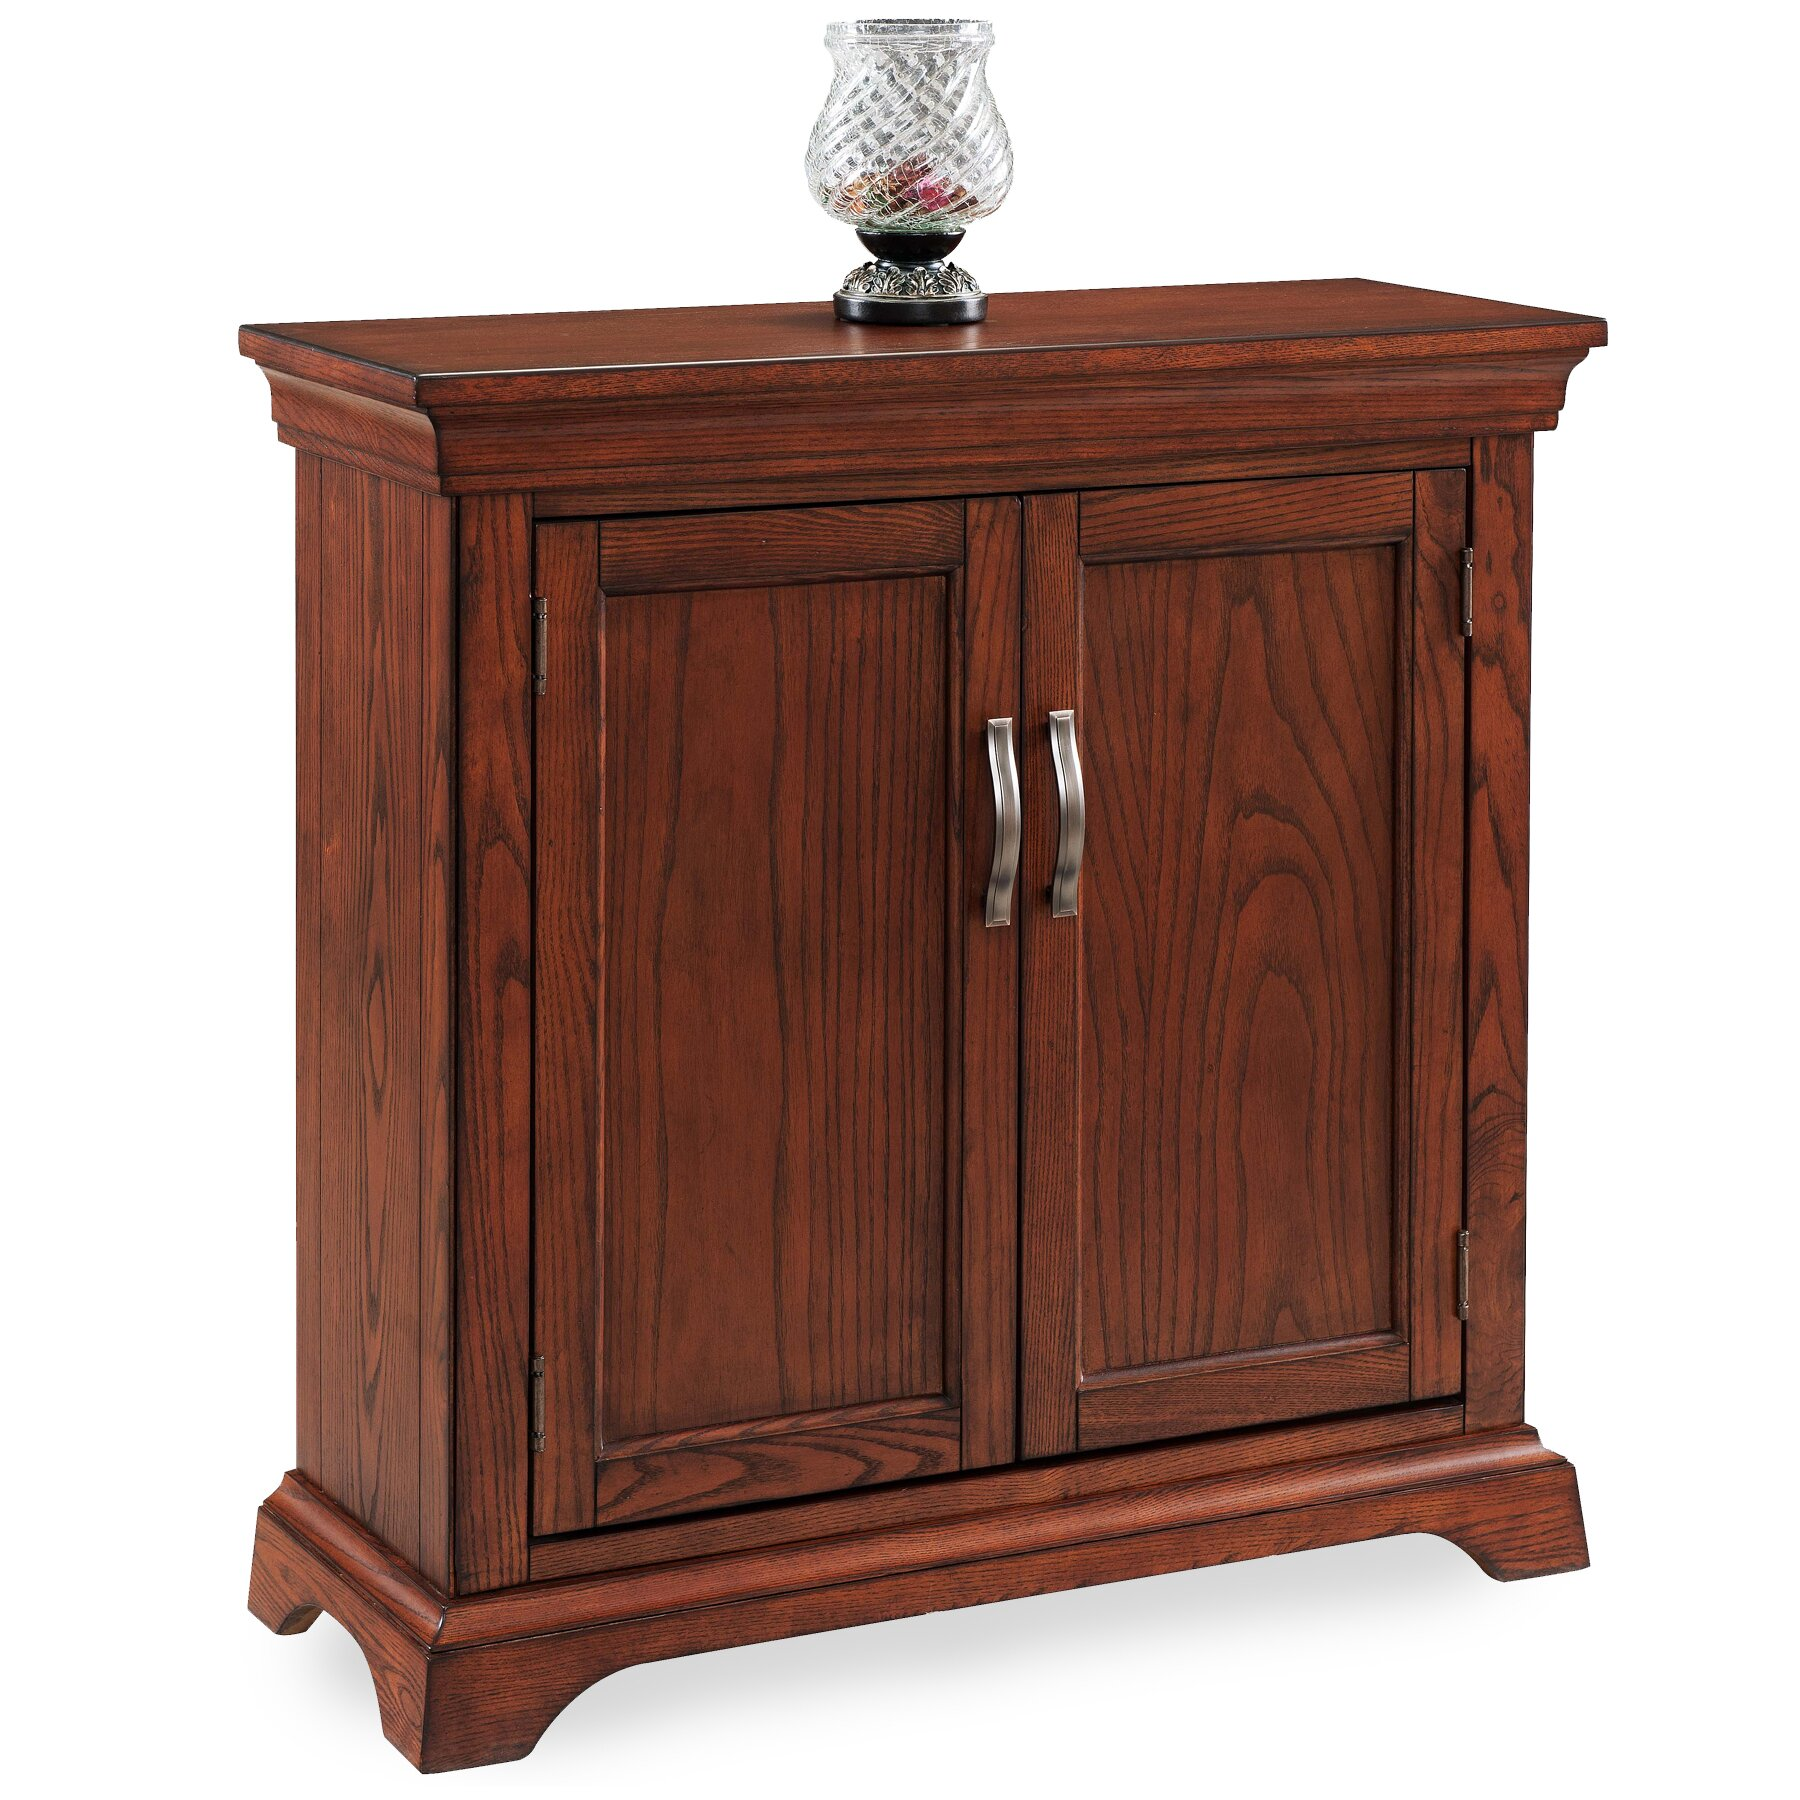 Foyer Cabinets: Leick Favorite Finds Traditional Foyer Cabinet/Hall Stand